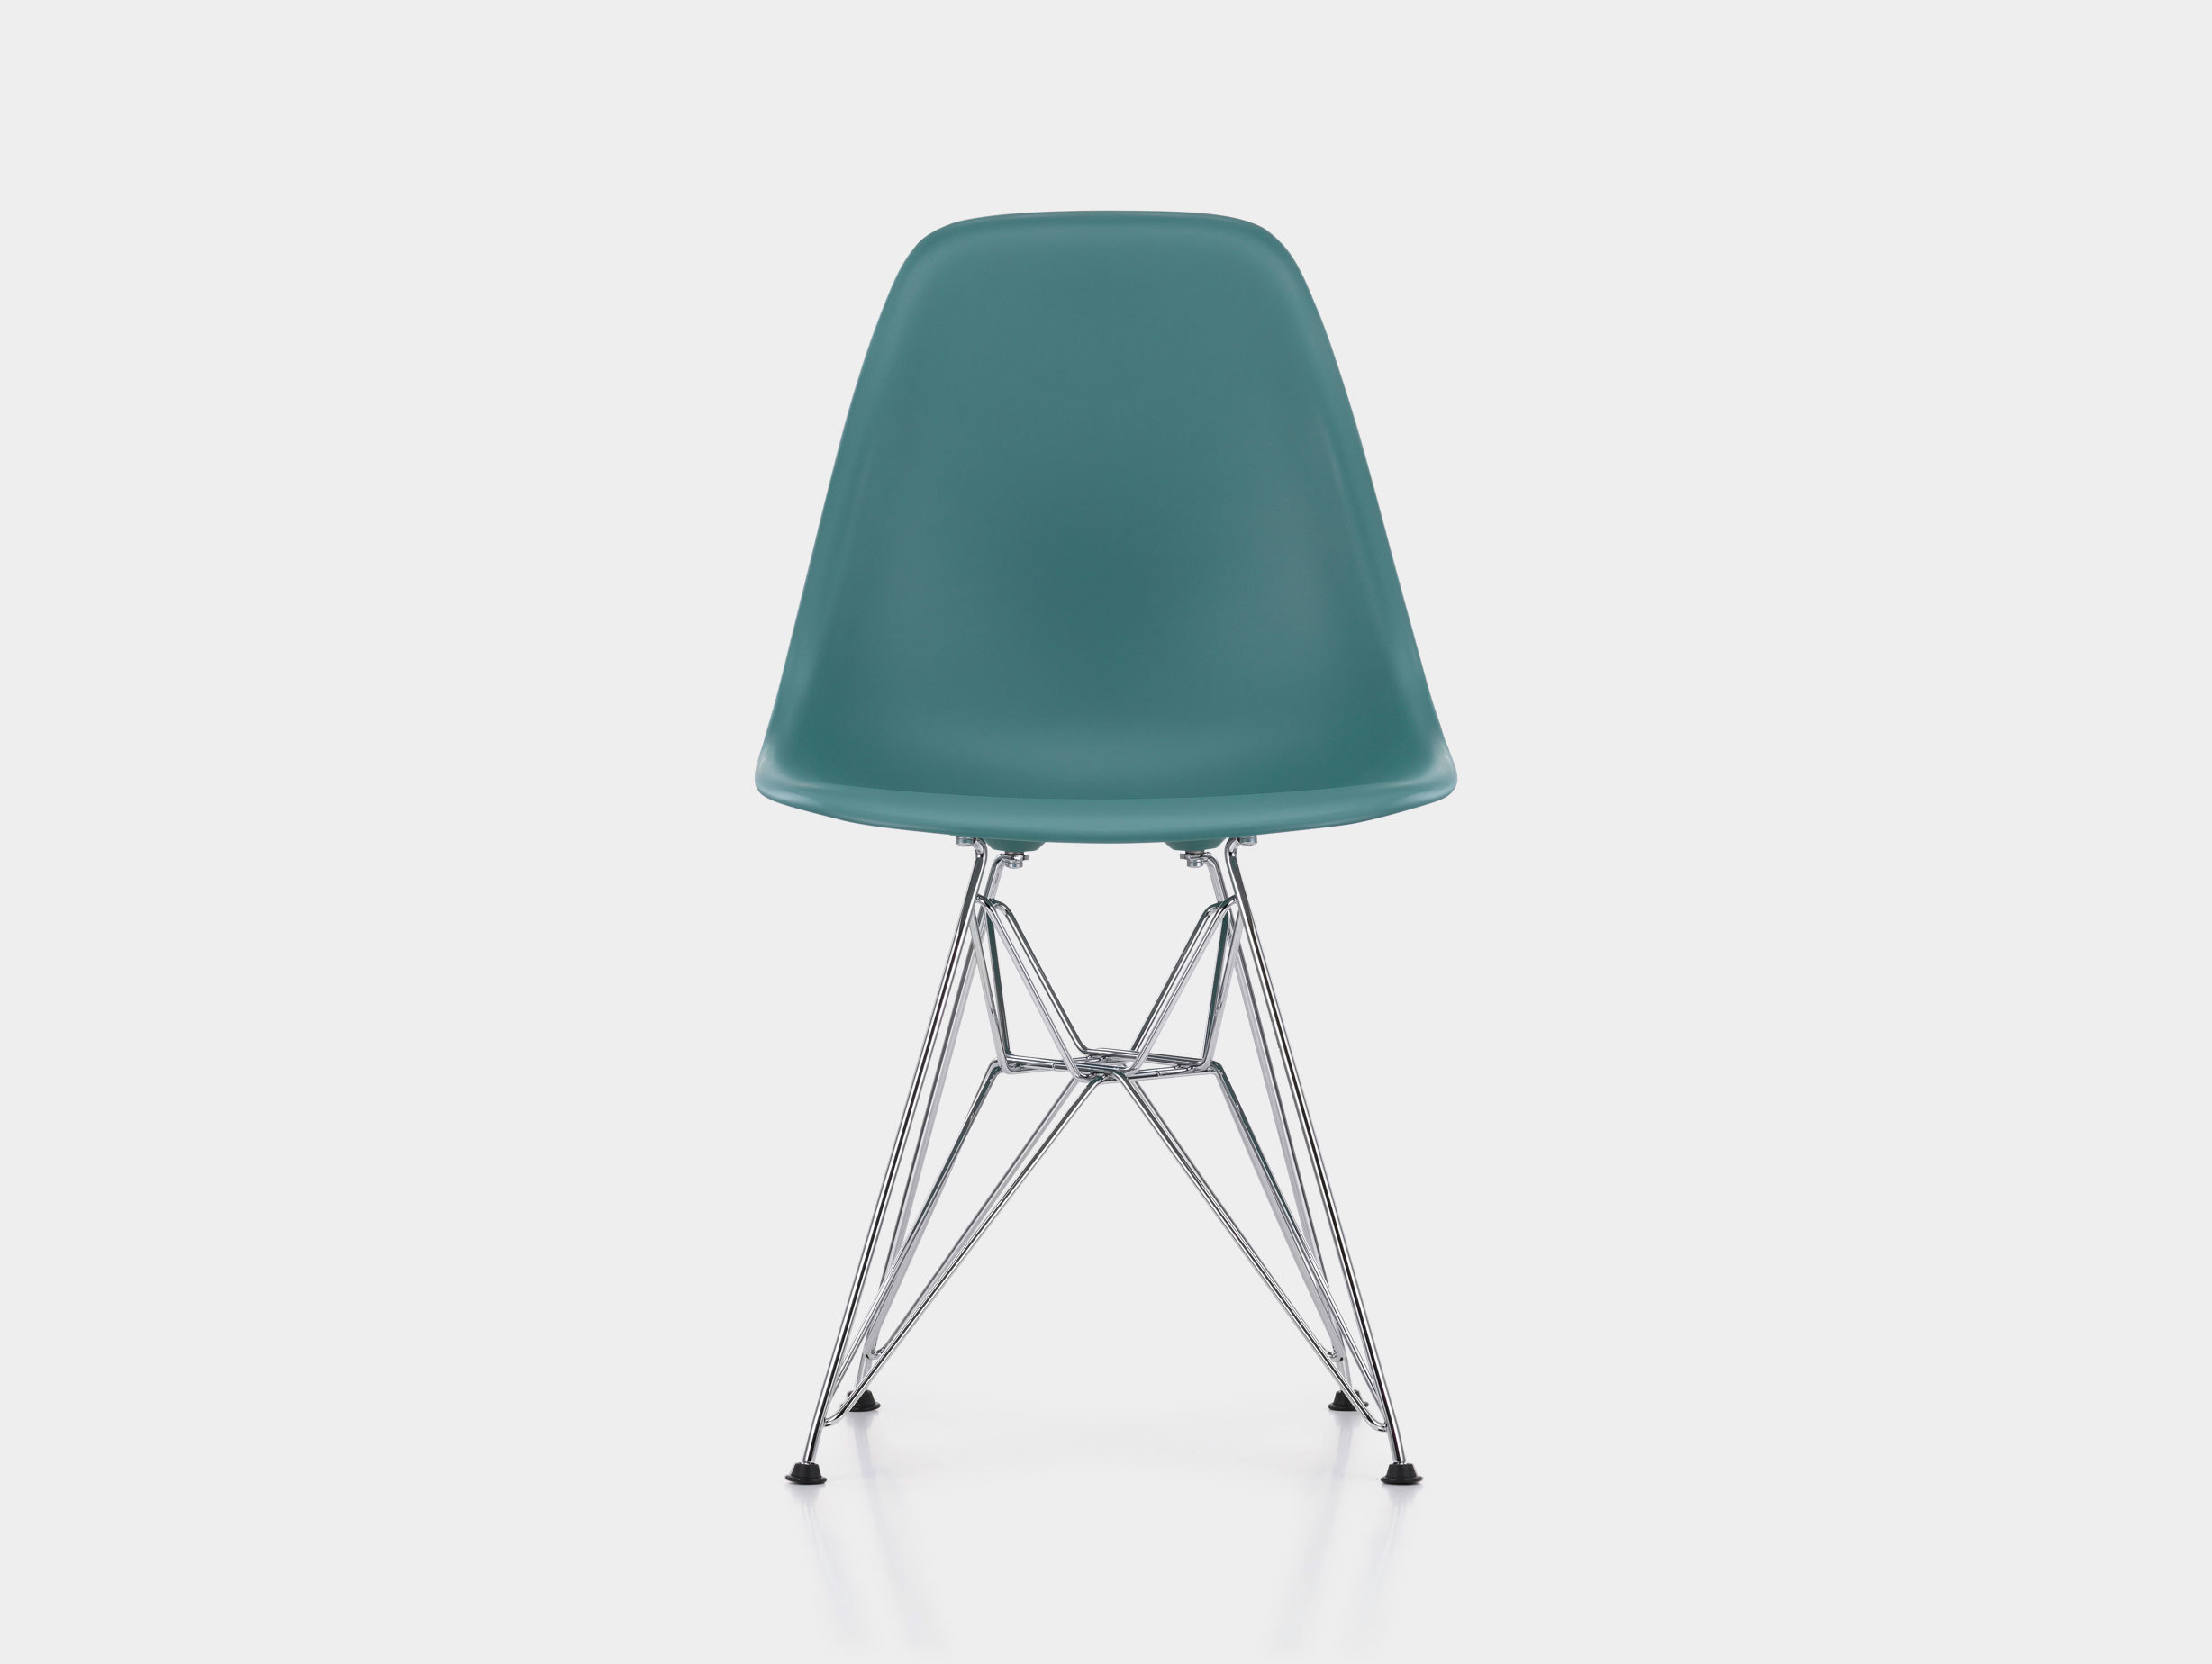 Eames DSR Plastic Side Chair image 2